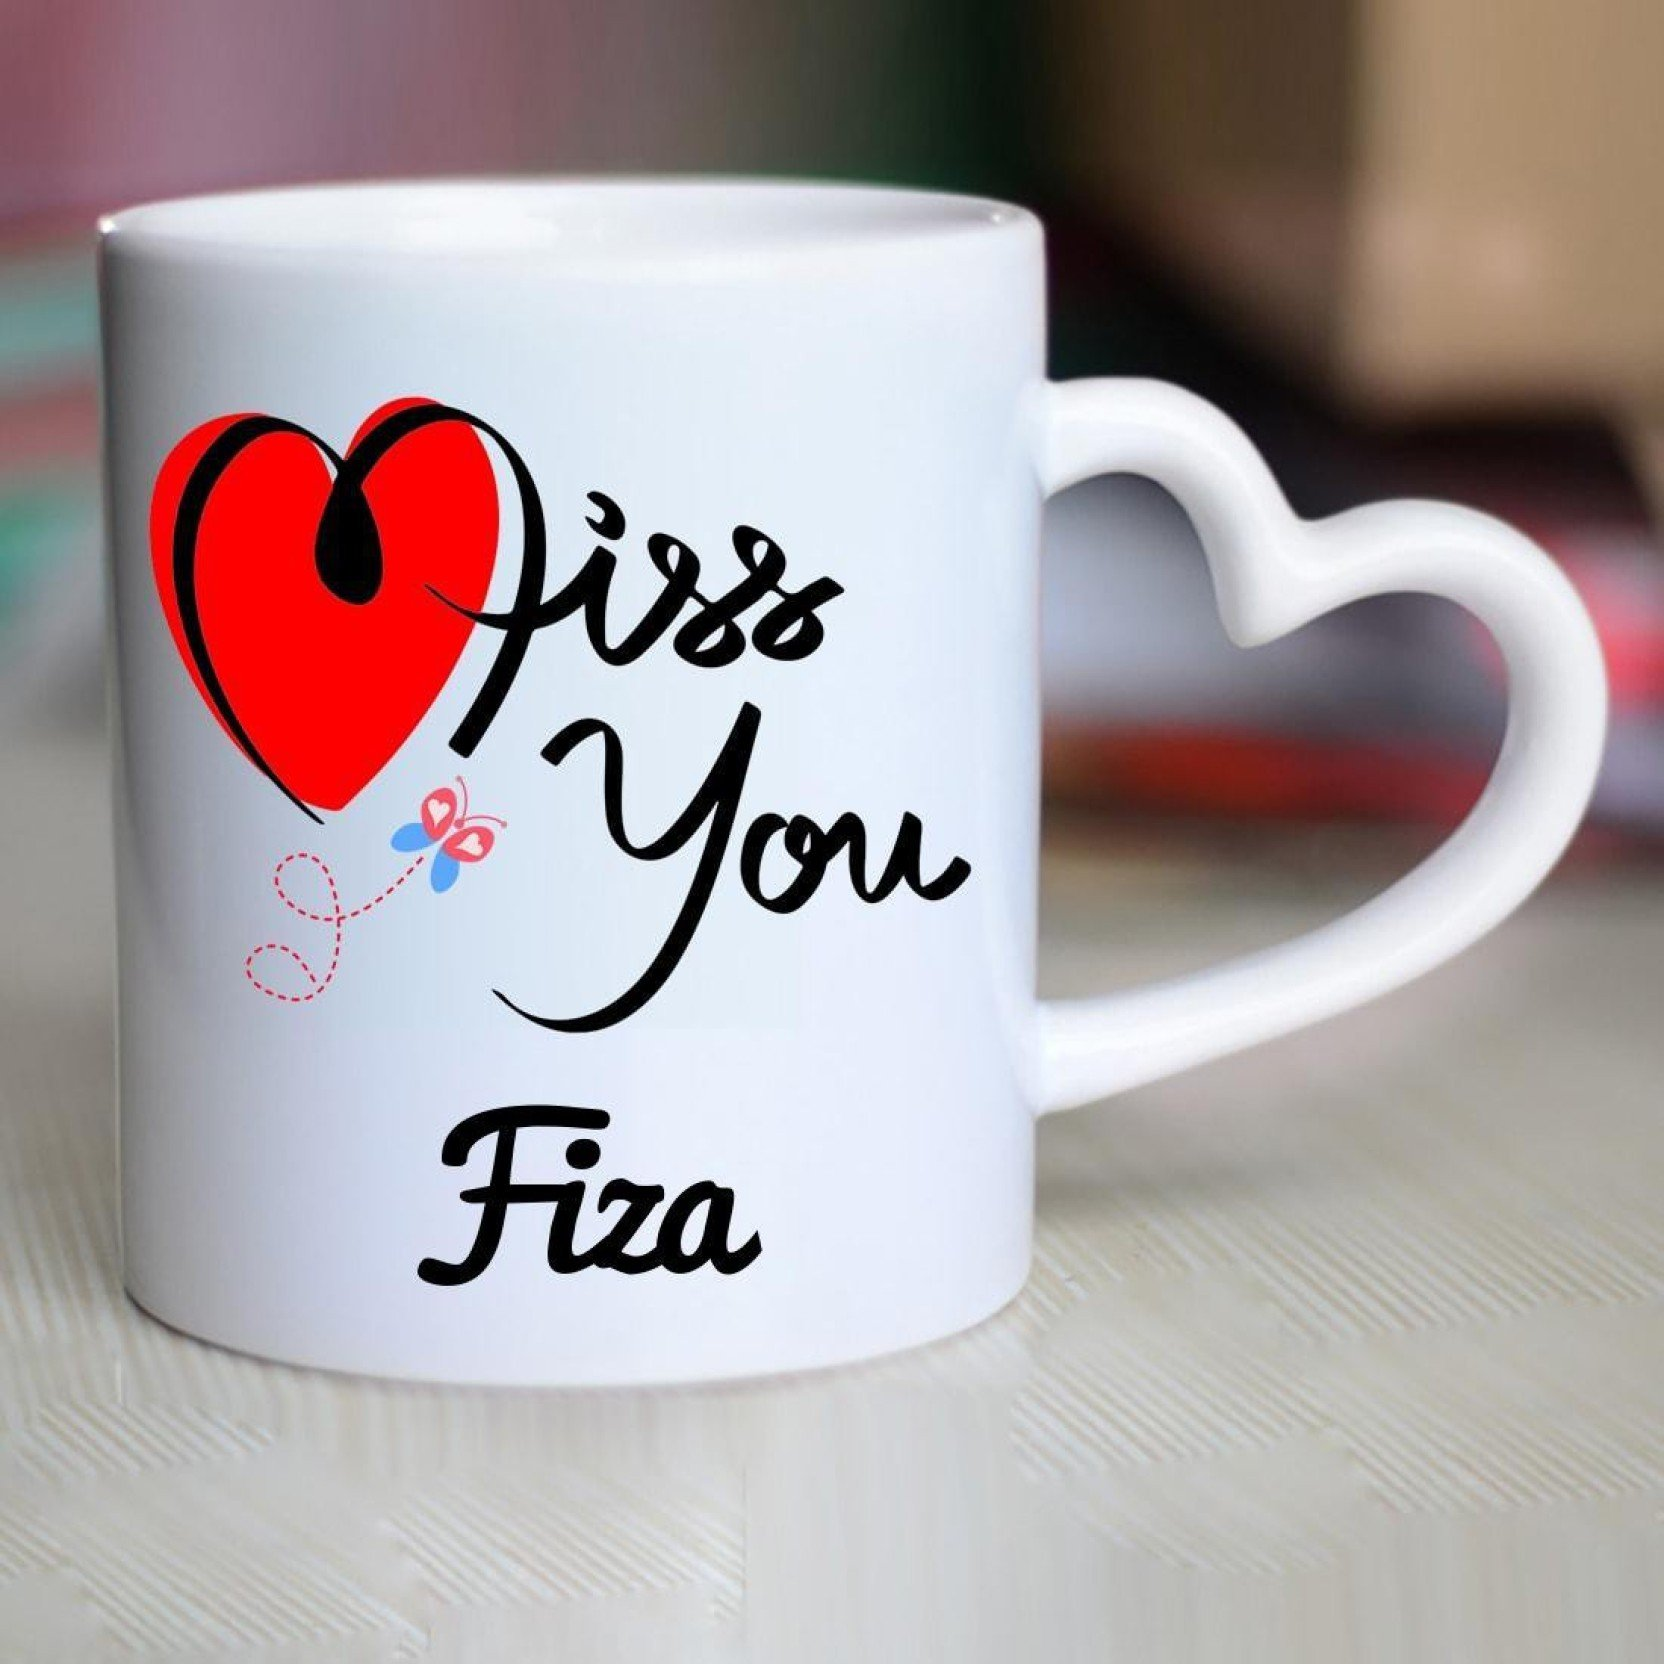 Chanakya I Miss You Fiza Heart Handle mug Ceramic Mug Price in 1664x1664